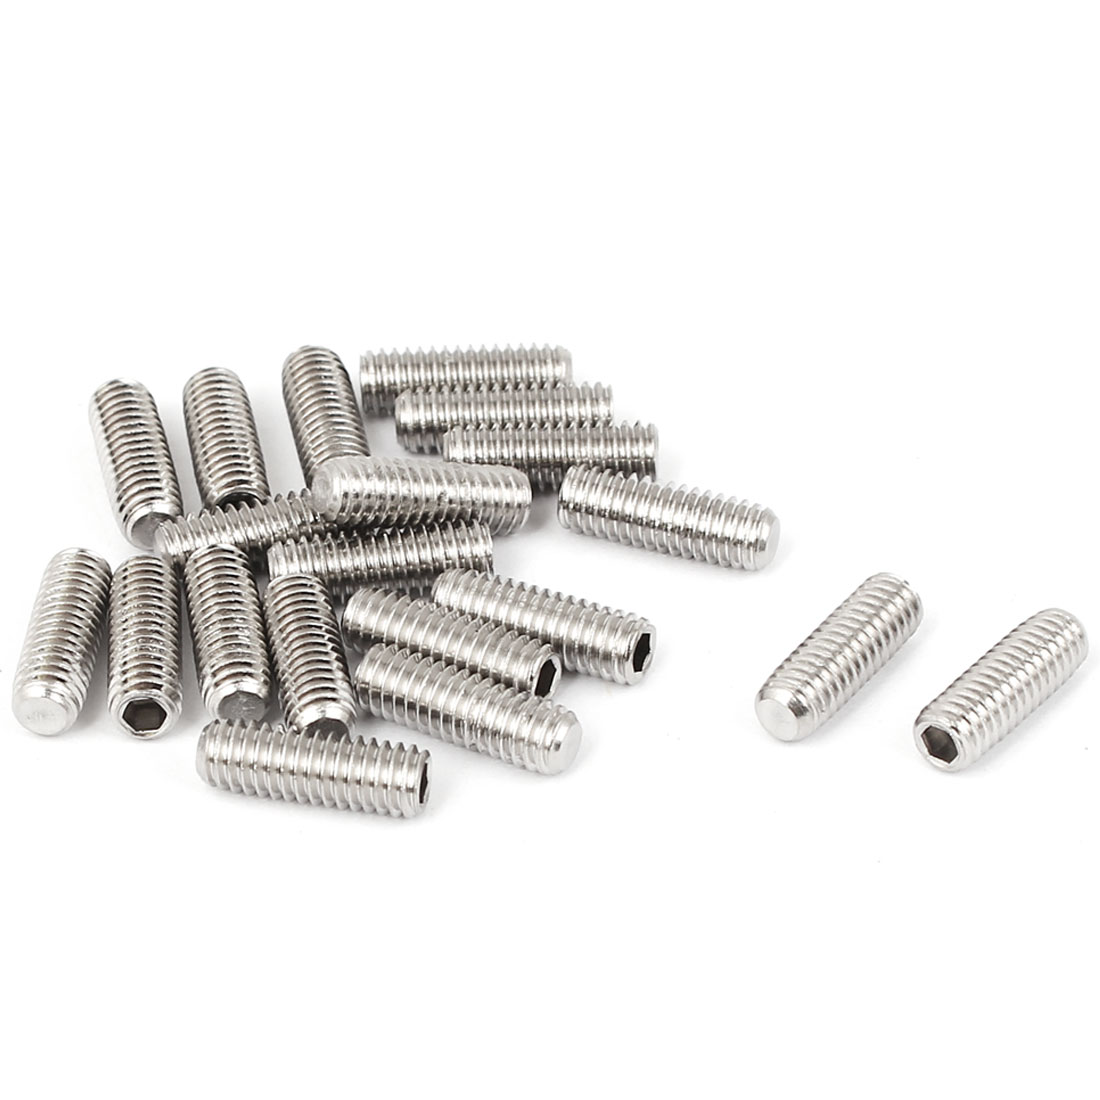 M4x12mm Cup Point Hex Socket Grub Set Screws 20pcs for Gear